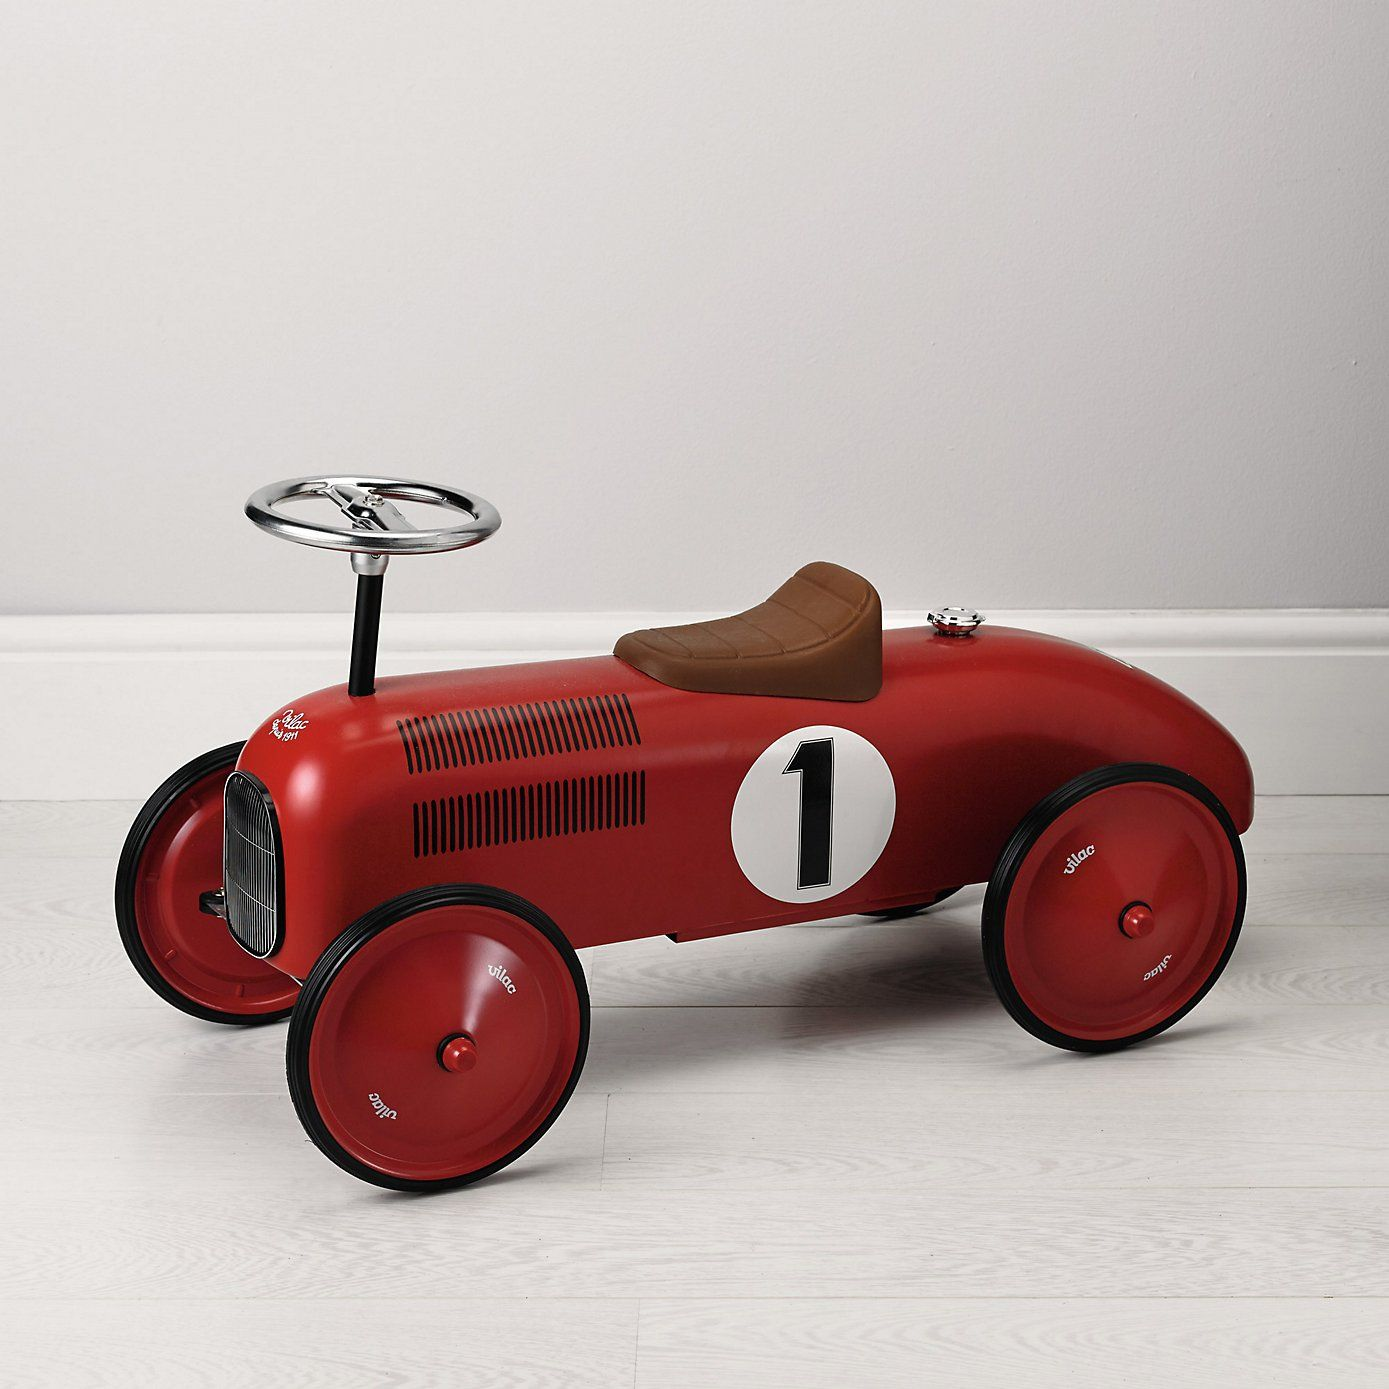 Toys car for child  Ride On Carwill they fight over it  Sweet Things  Pinterest